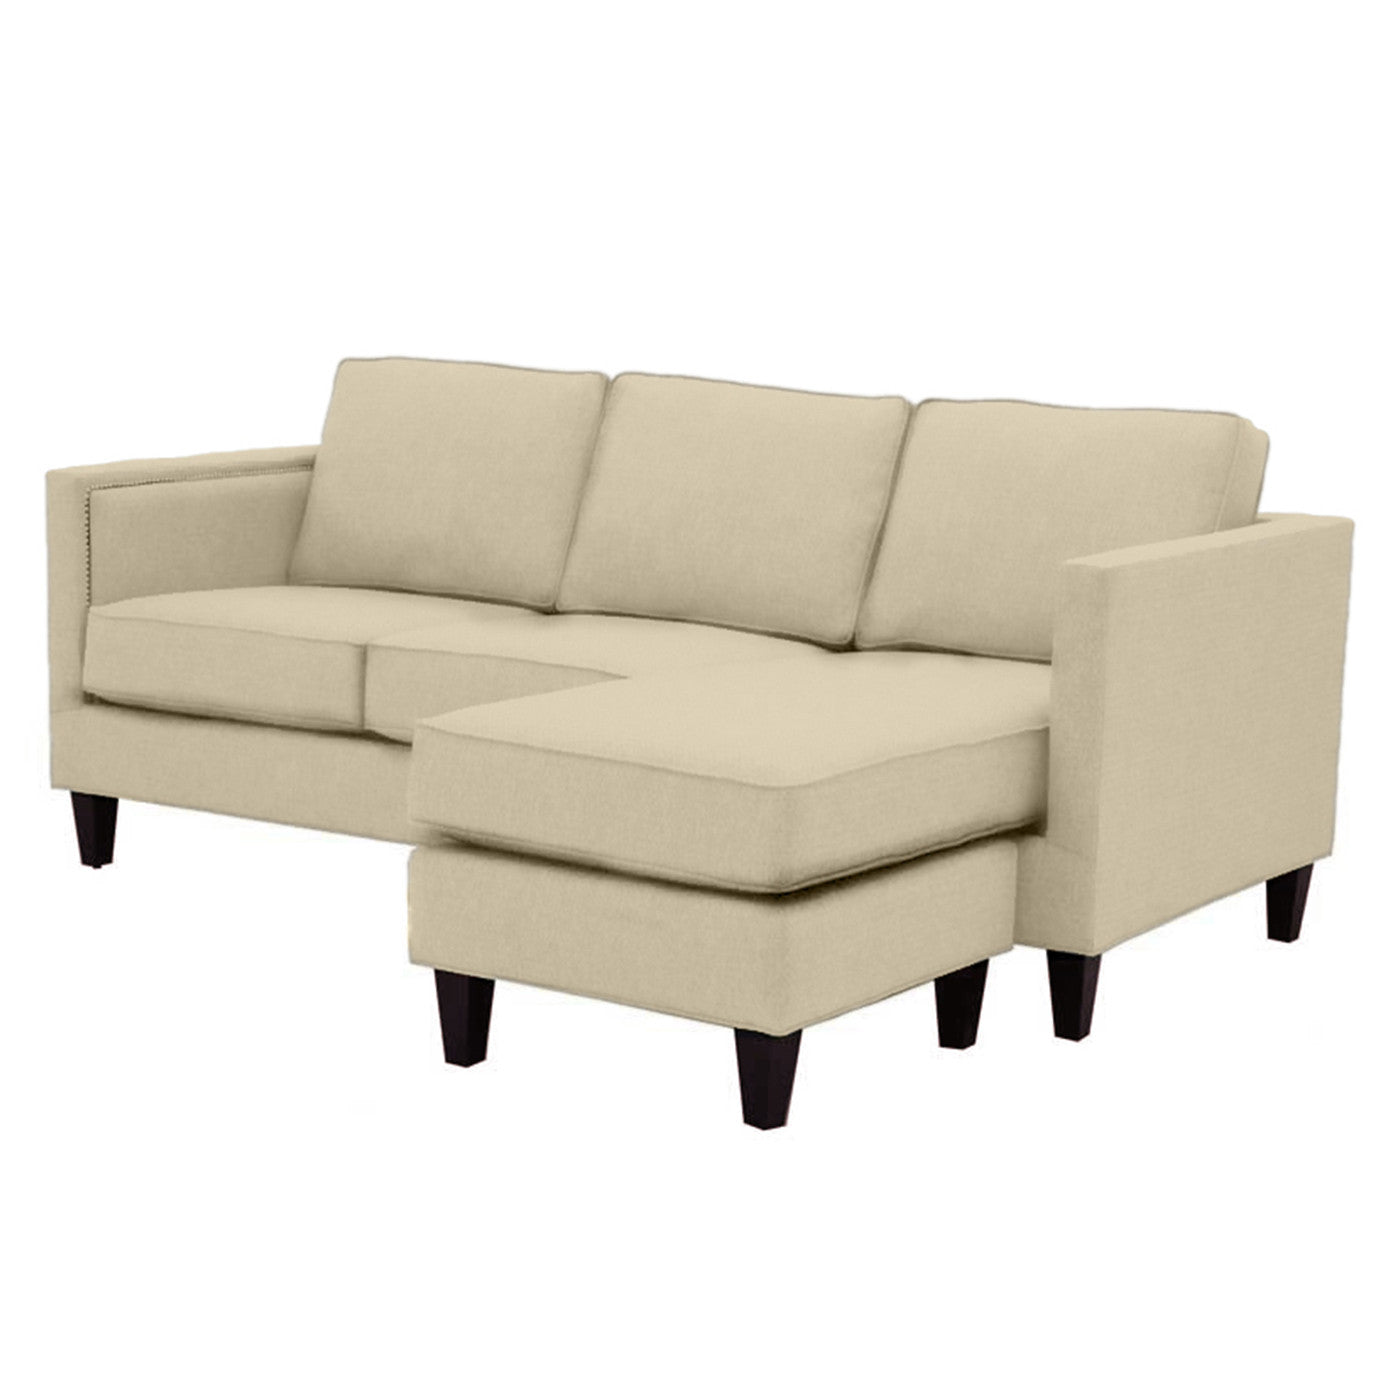 Chaise sofa - Anderson Reversible Chaise Sofa Choice Of Fabrics Apt2b 1